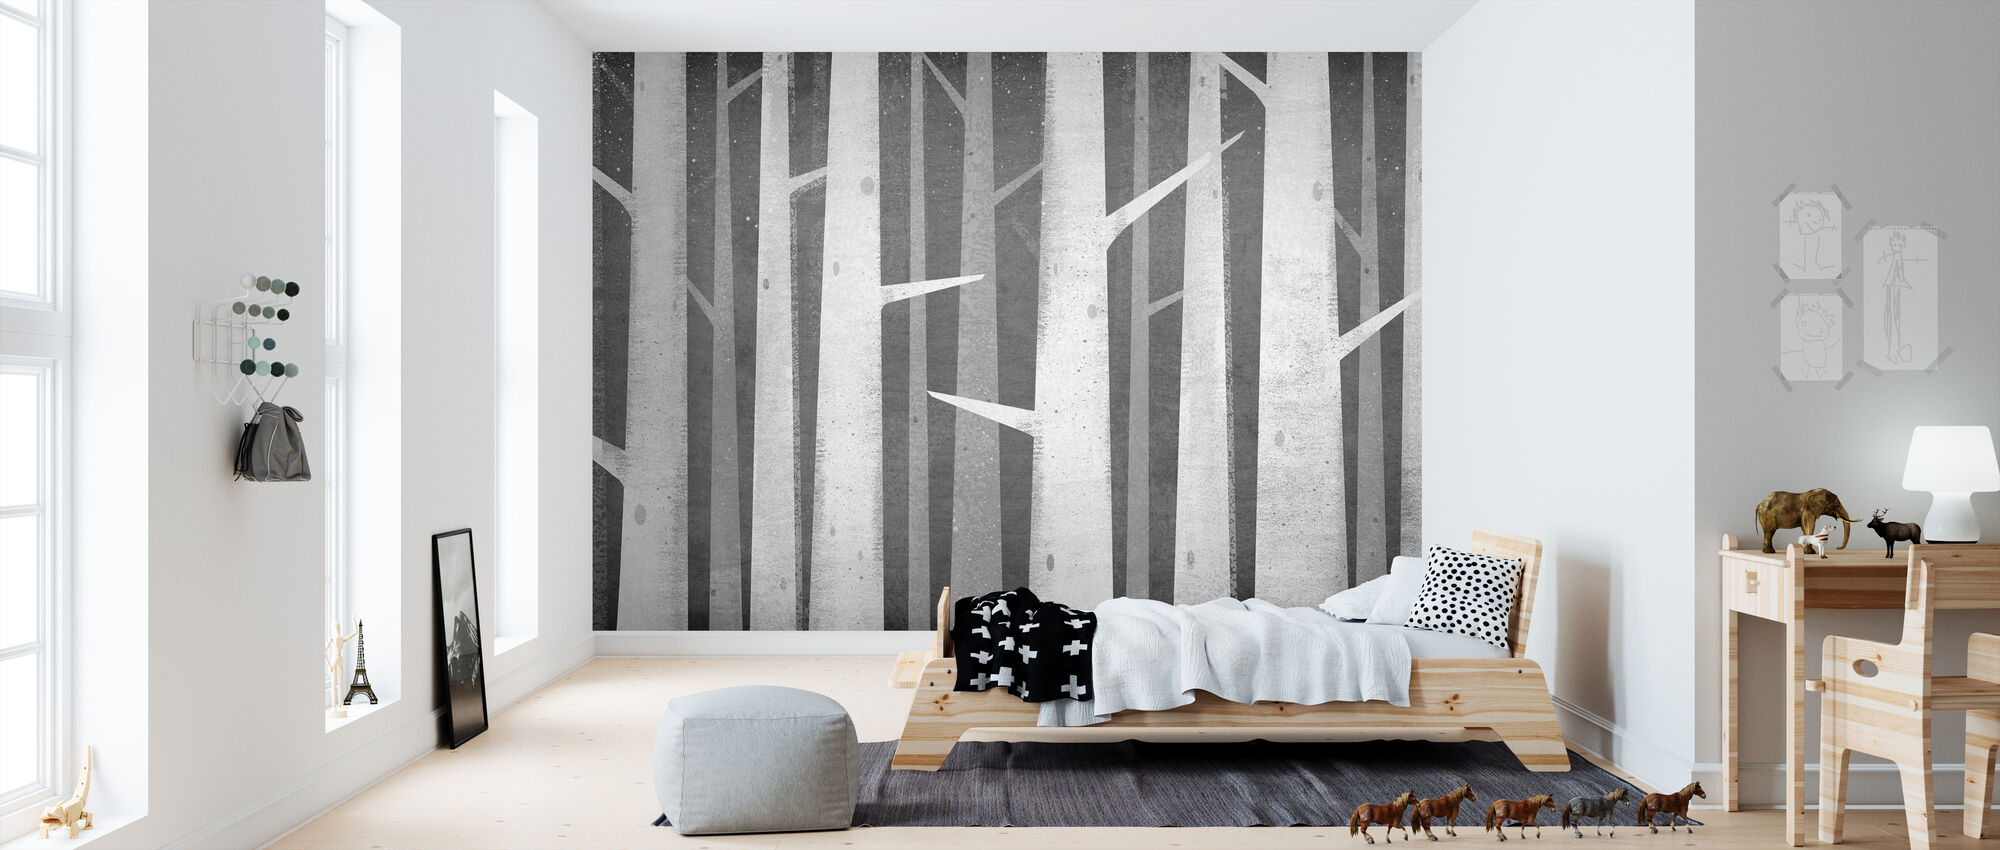 Birches Winter Woods - Wallpaper - Kids Room